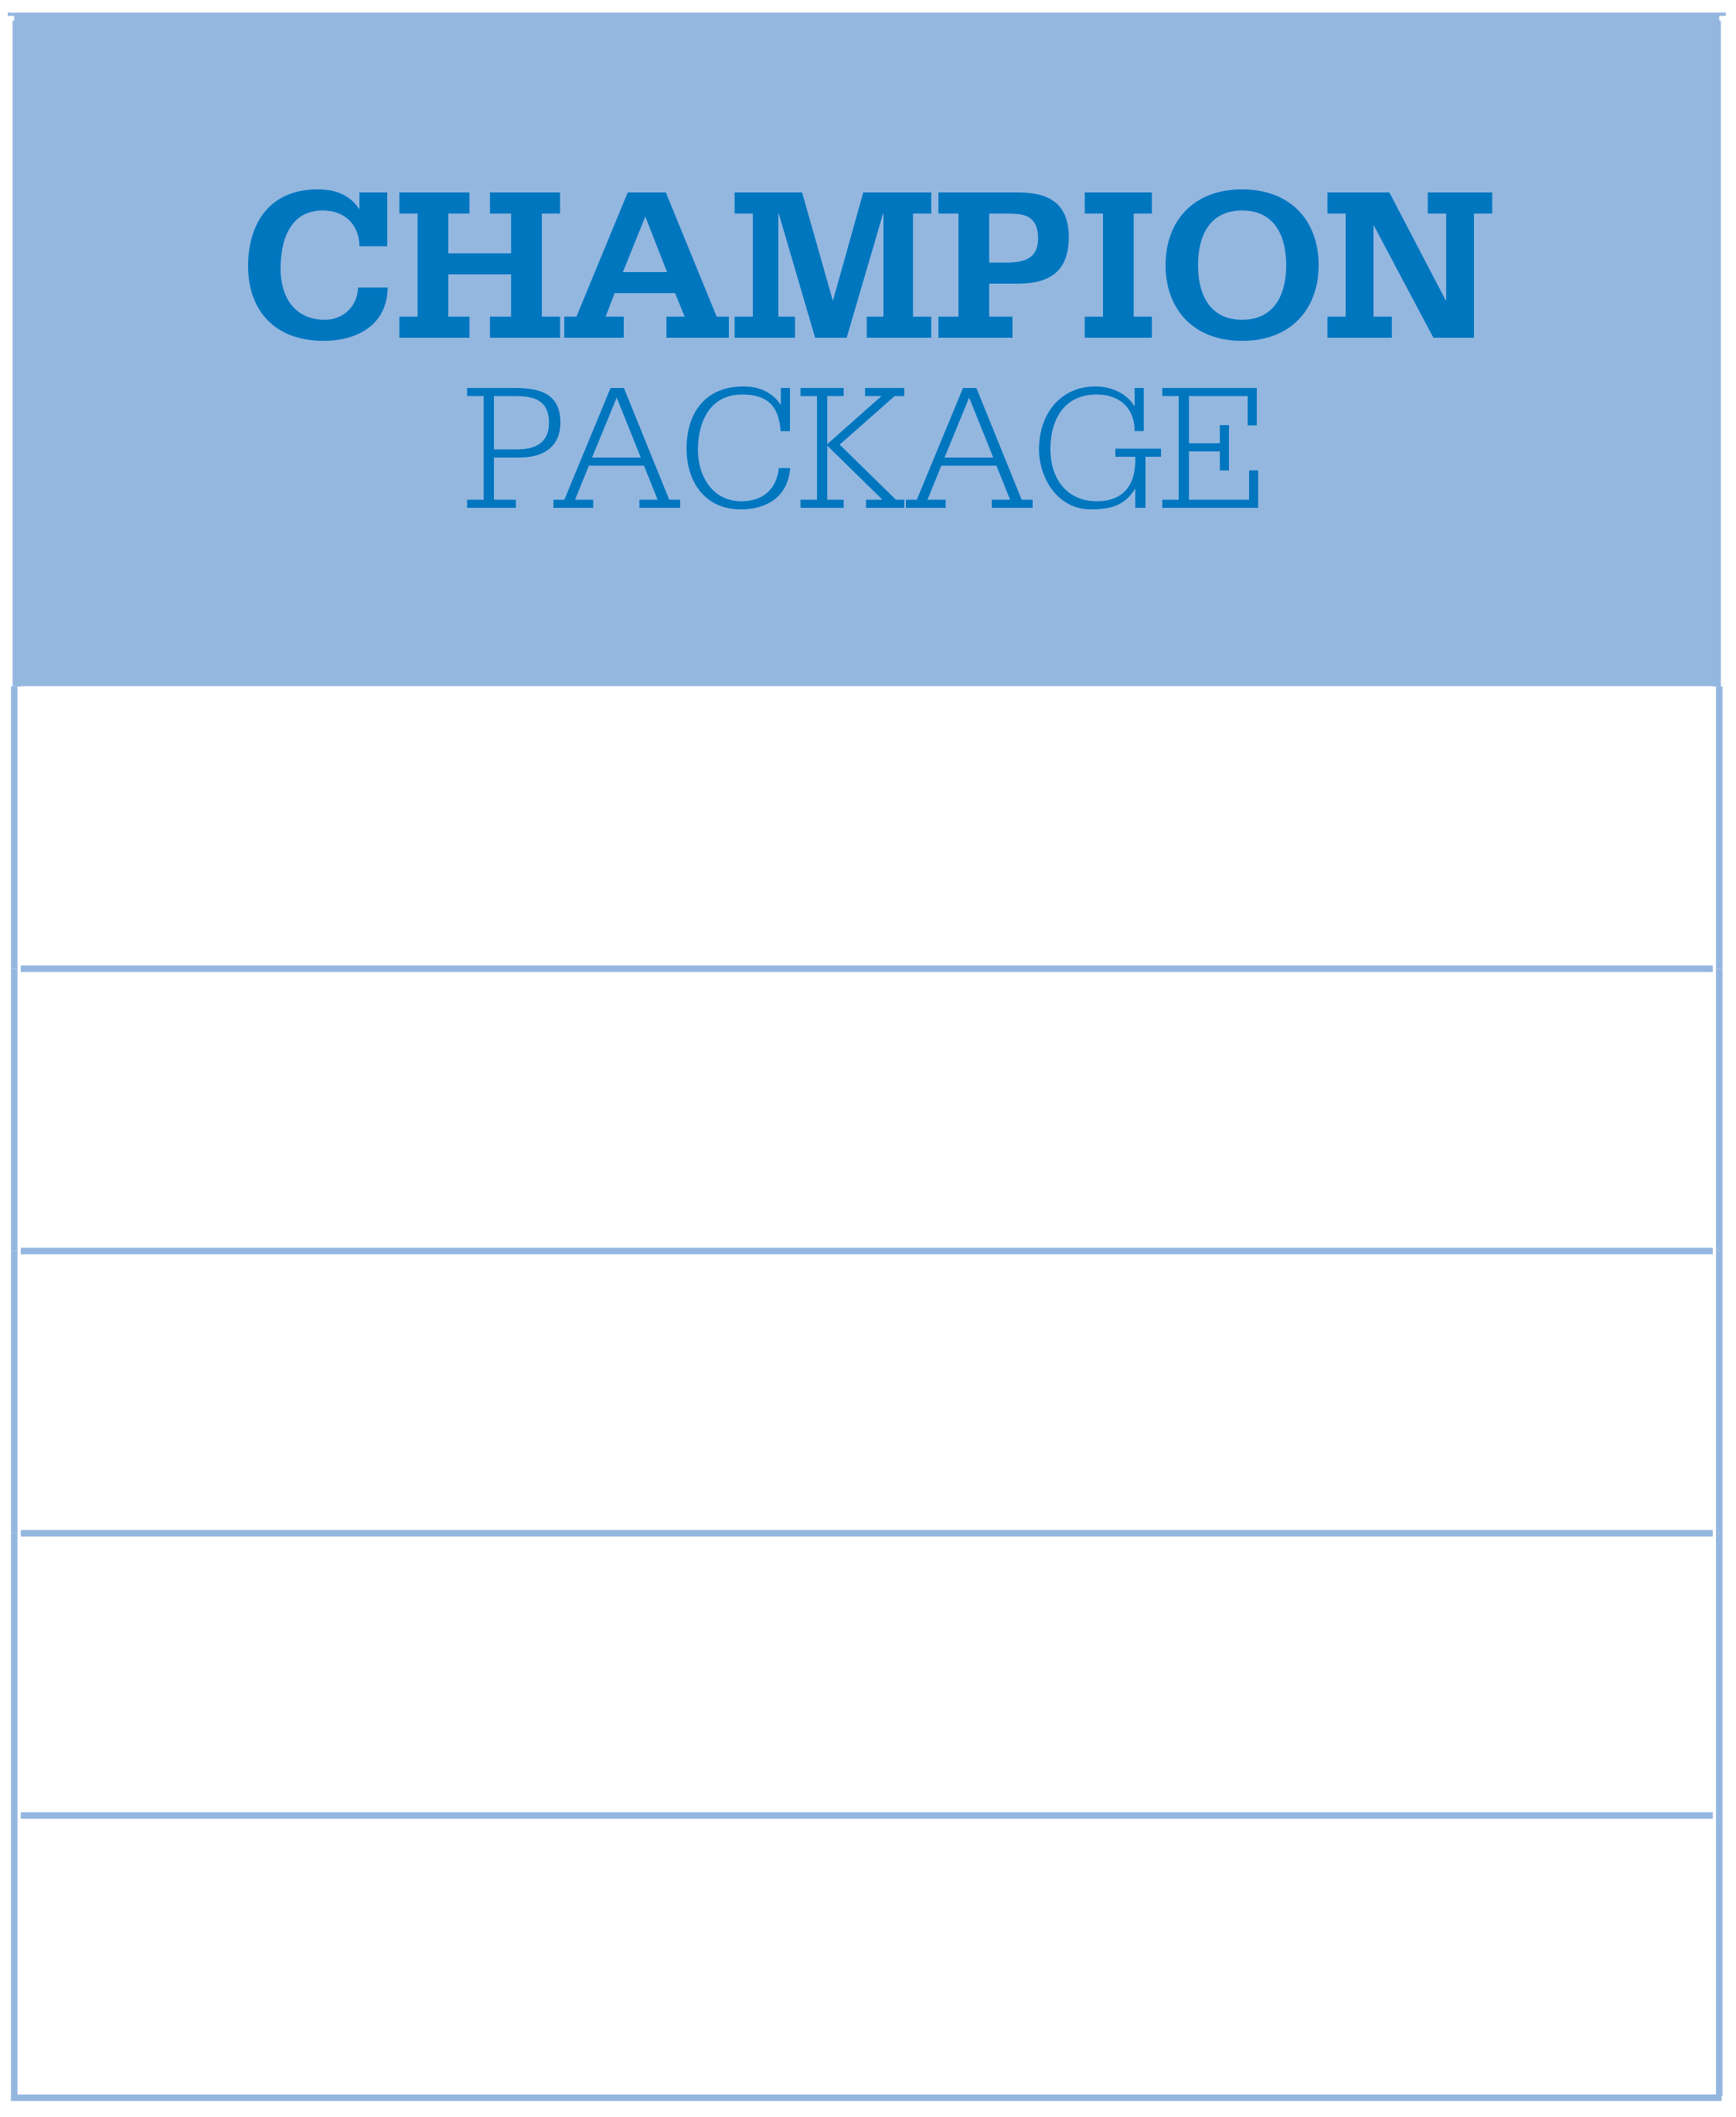 The Champion Package at IMG Academy includes sport facilities use, accommodations, performance sessions, on-campus dining, and transportation services.